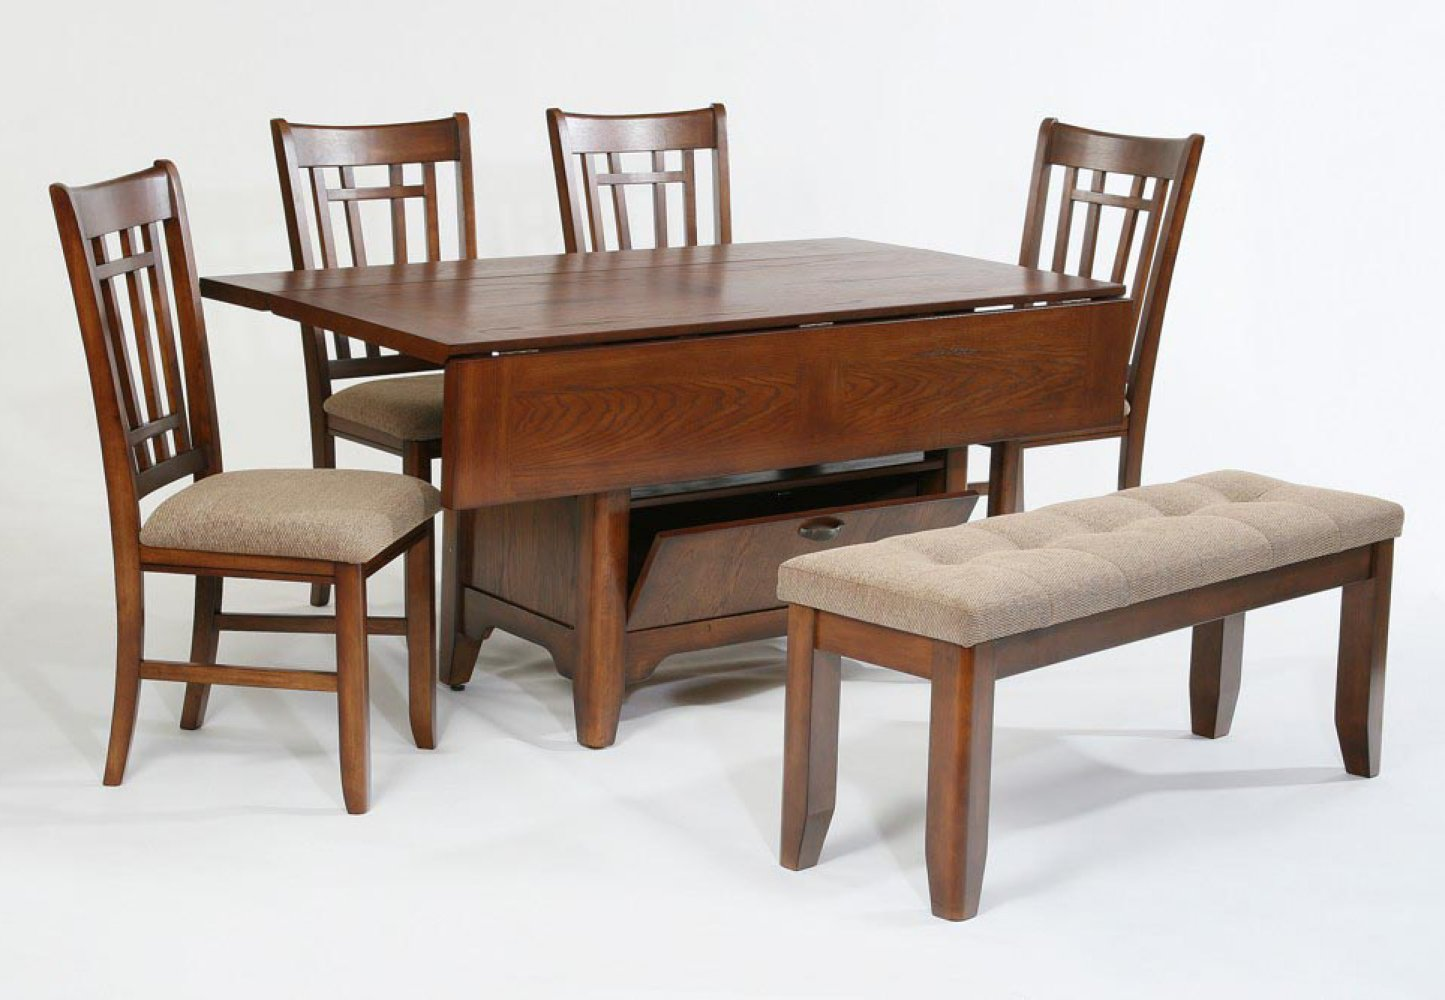 Dining Table Ideas For Small Spaces Compact Dining Space Arrangement With Drop Leaf Dining